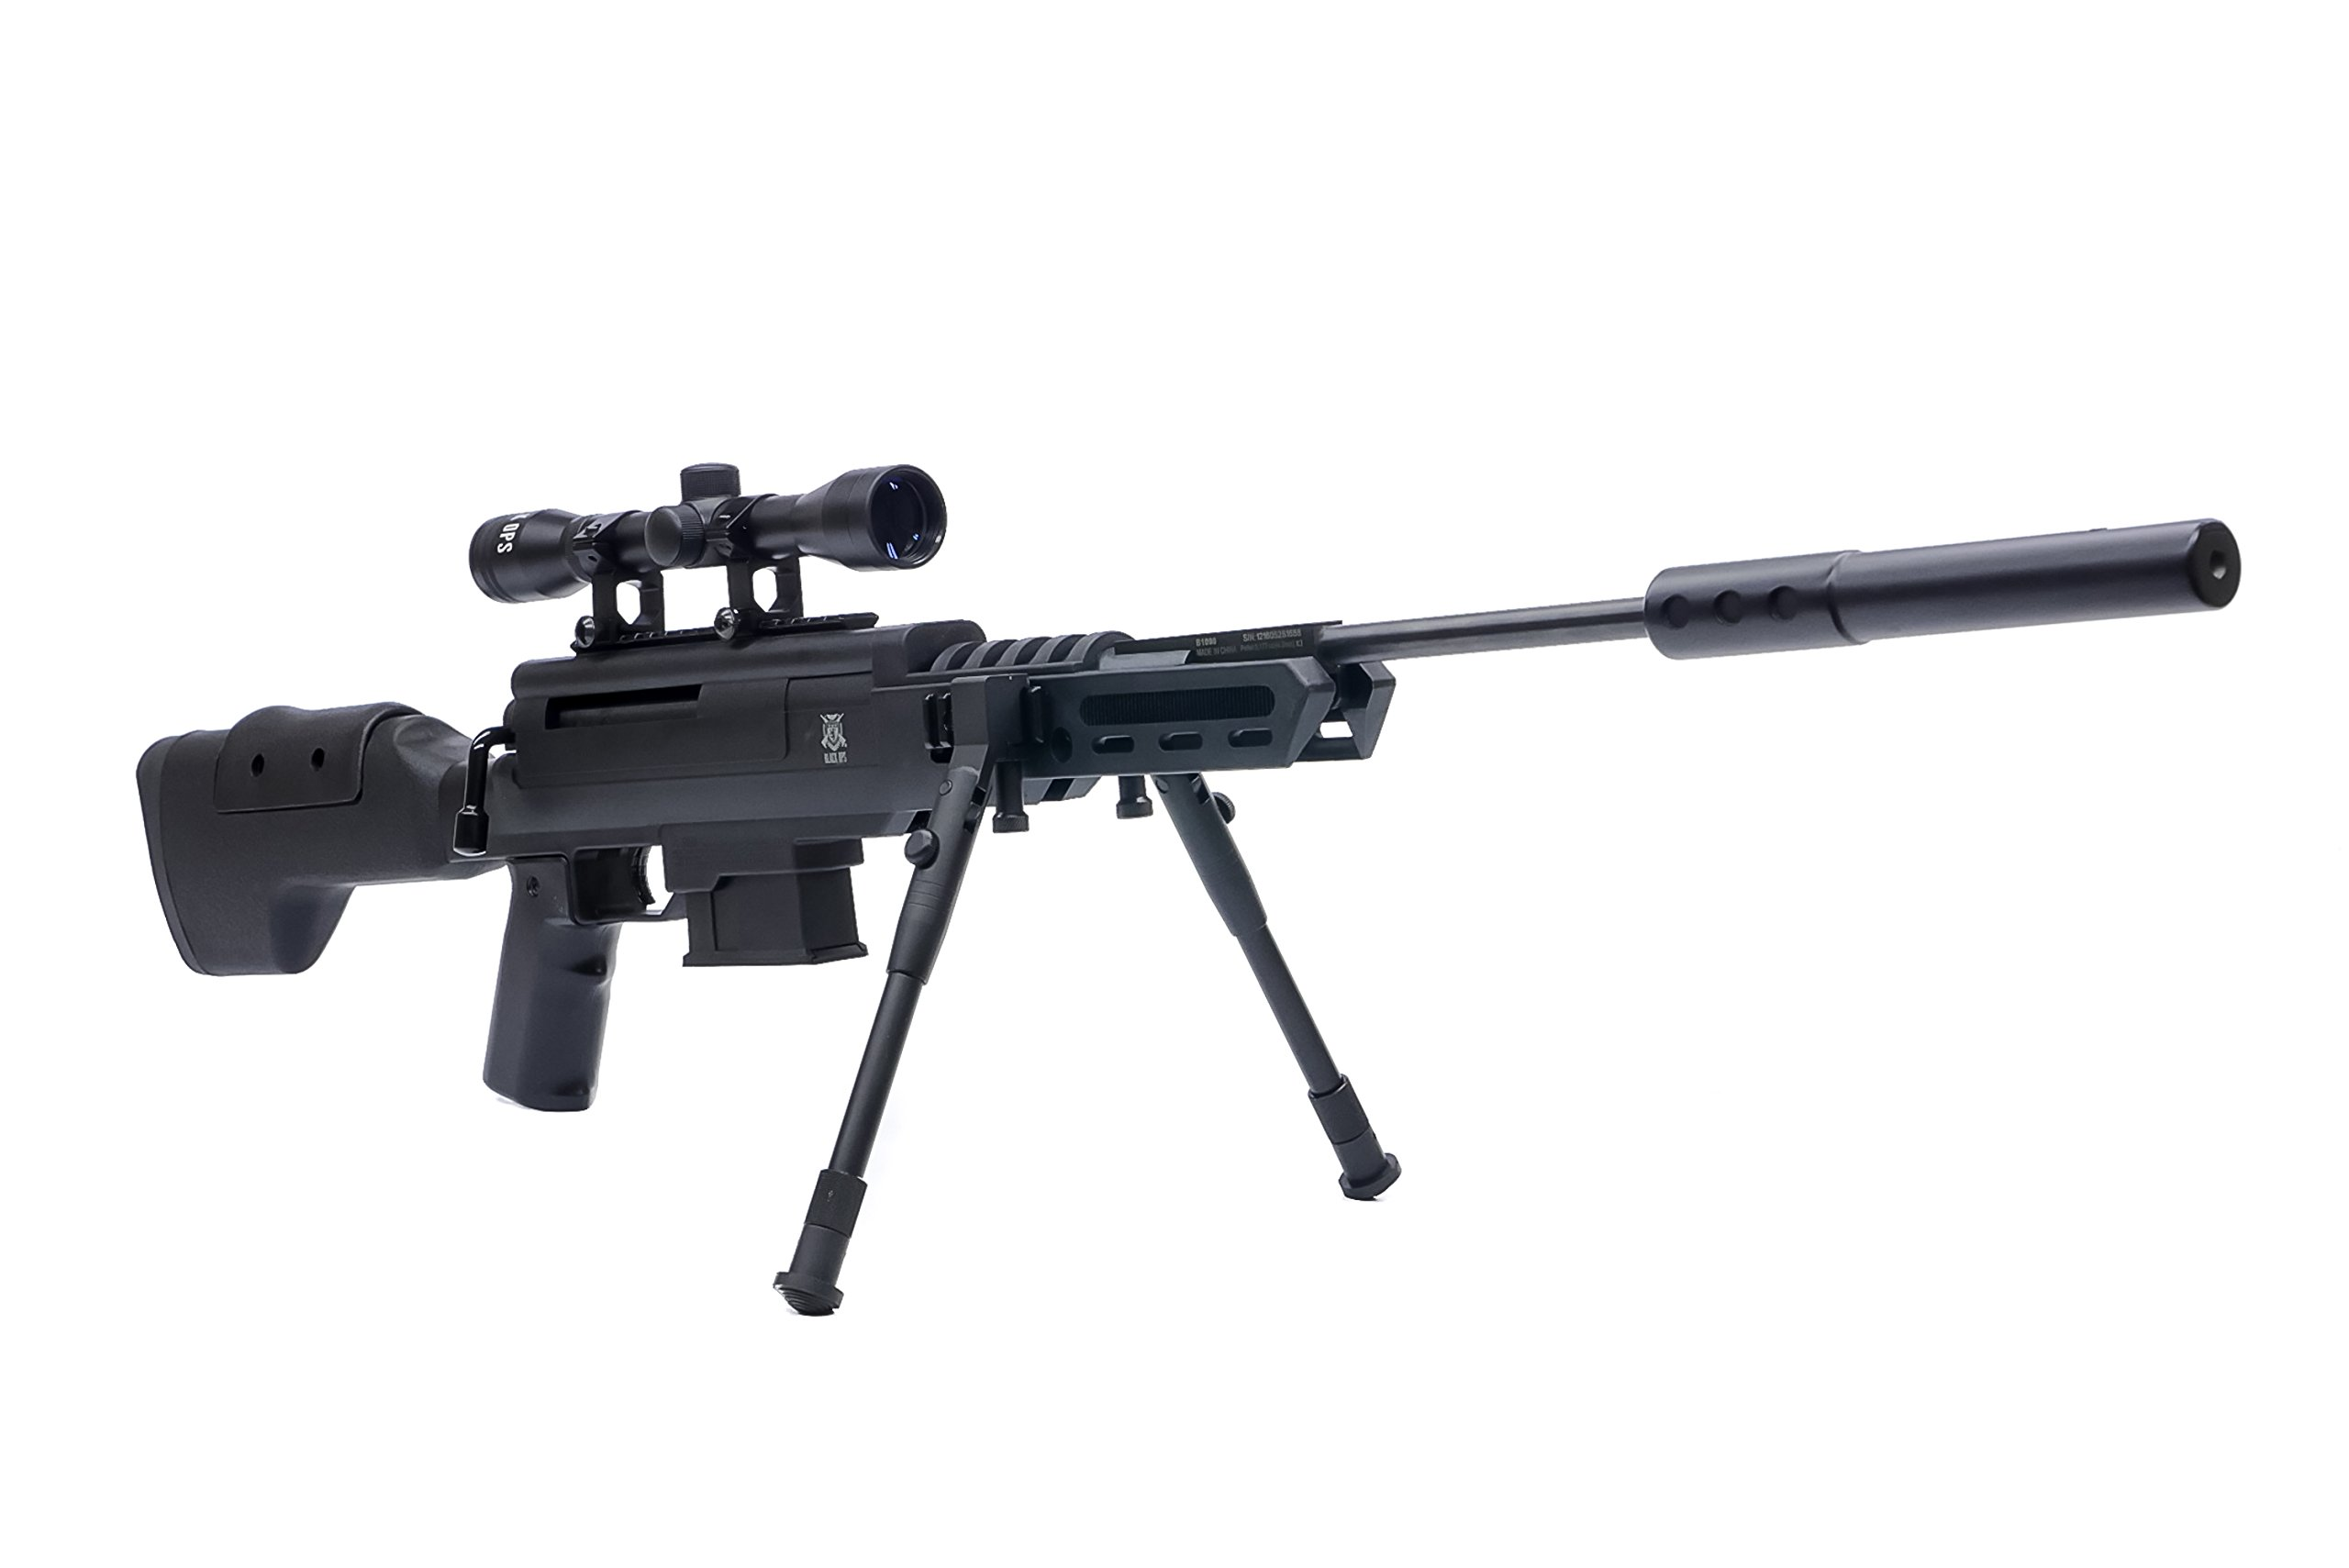 Black Ops Sniper Rifle S - Hunting Pellet Air Rifle Airgun with Suppressor - Included Scope and Bipod - Shoot .177 Caliber Pellets Ammo